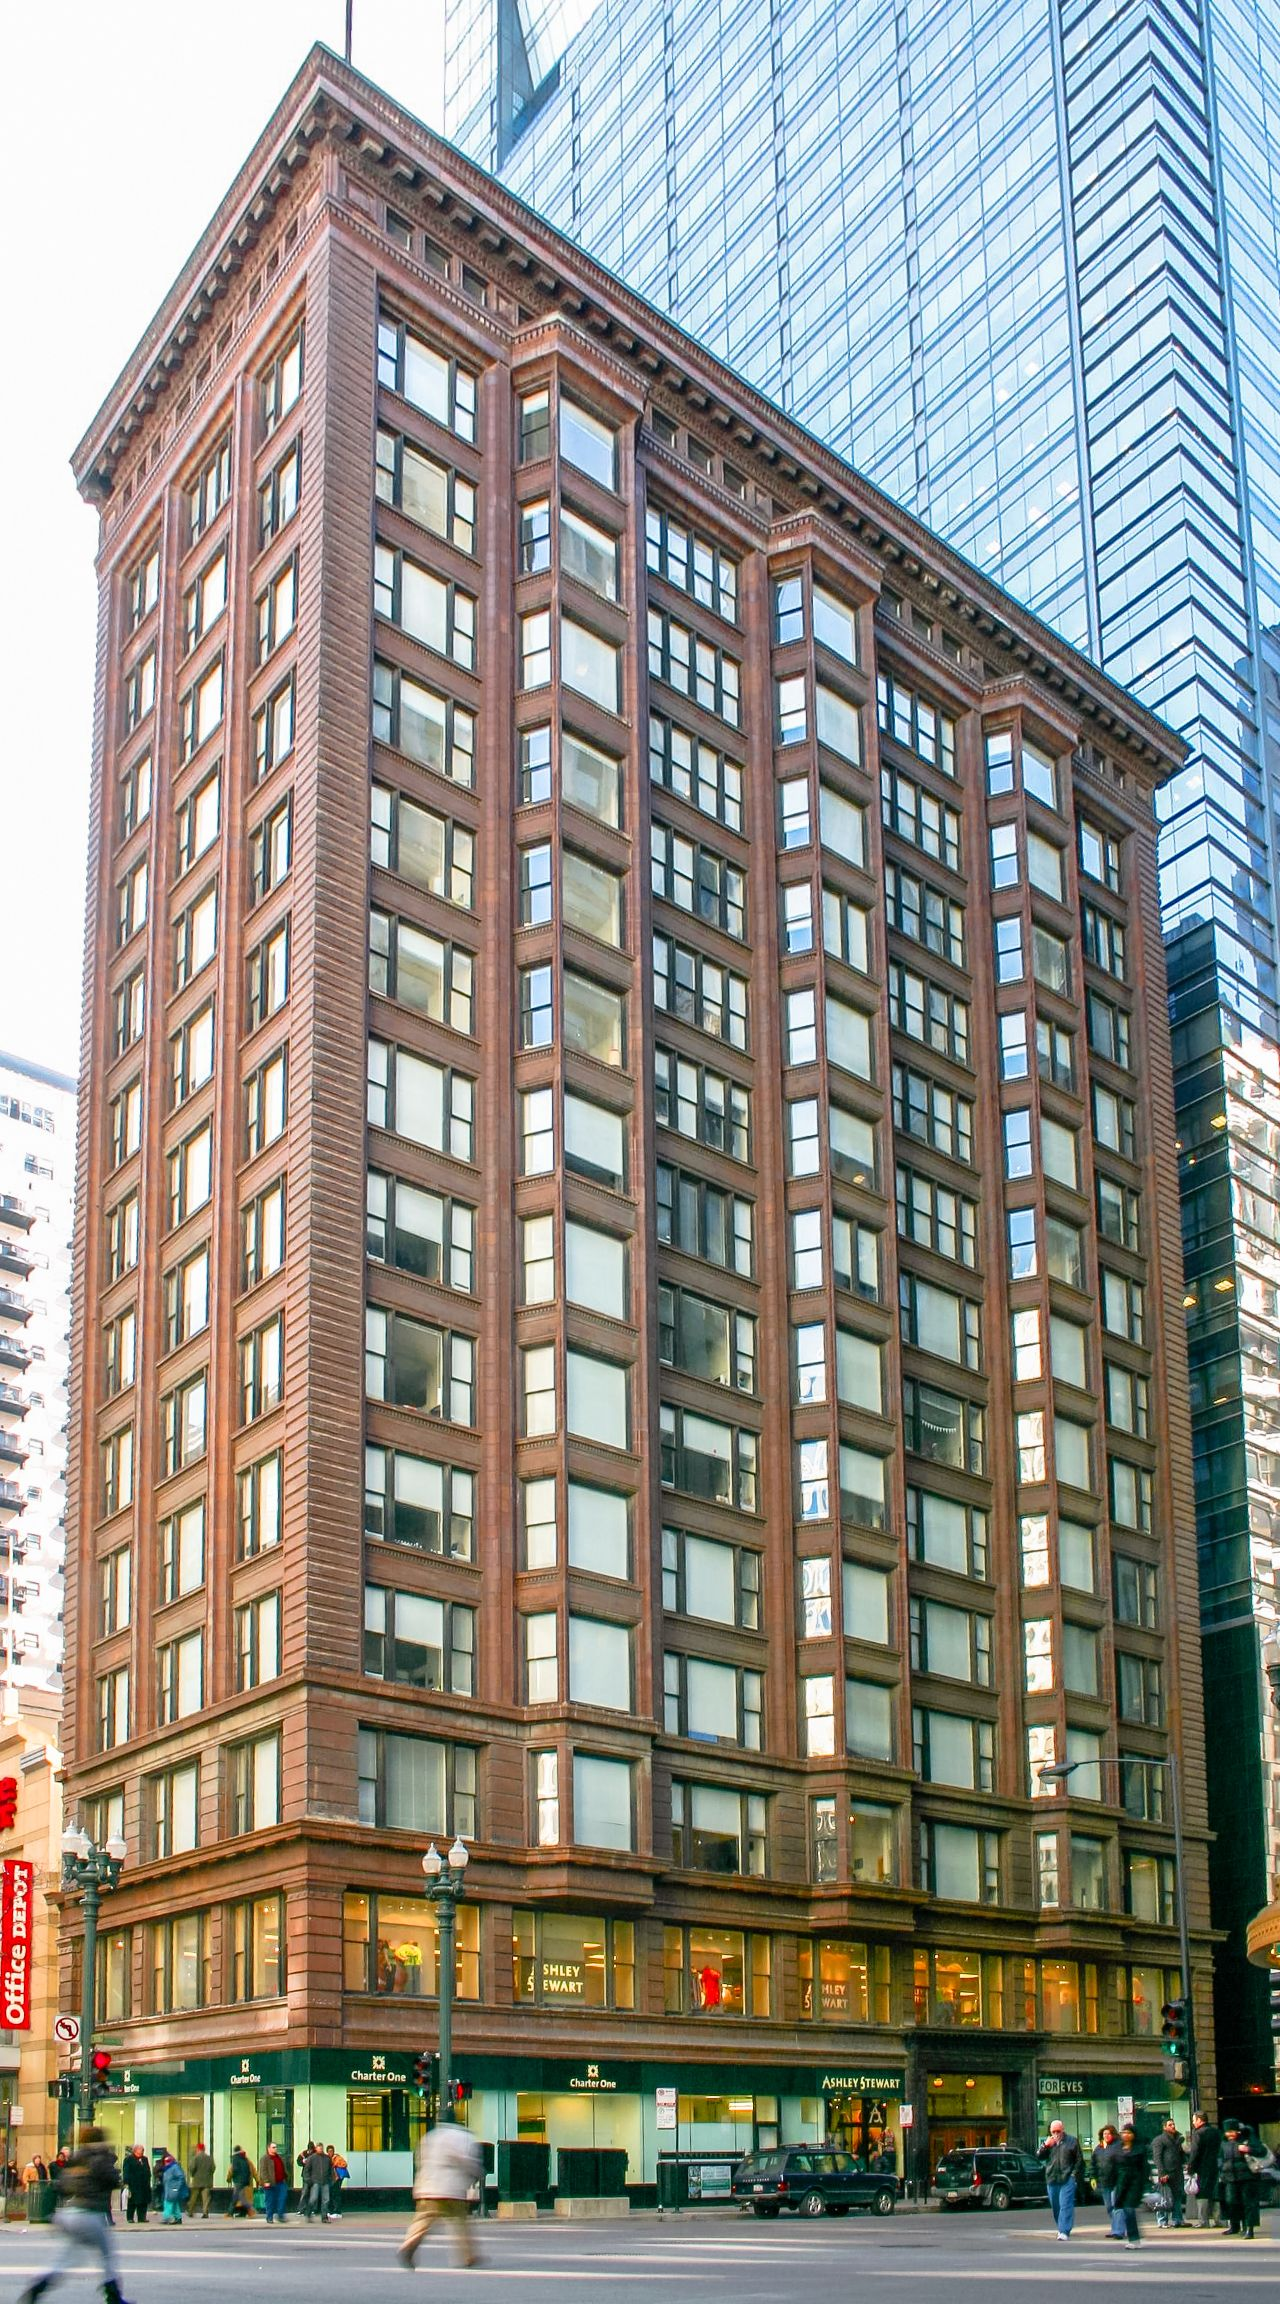 Modern Architecture Chicago burnham and root. monadnock building. chicago. 1889-91